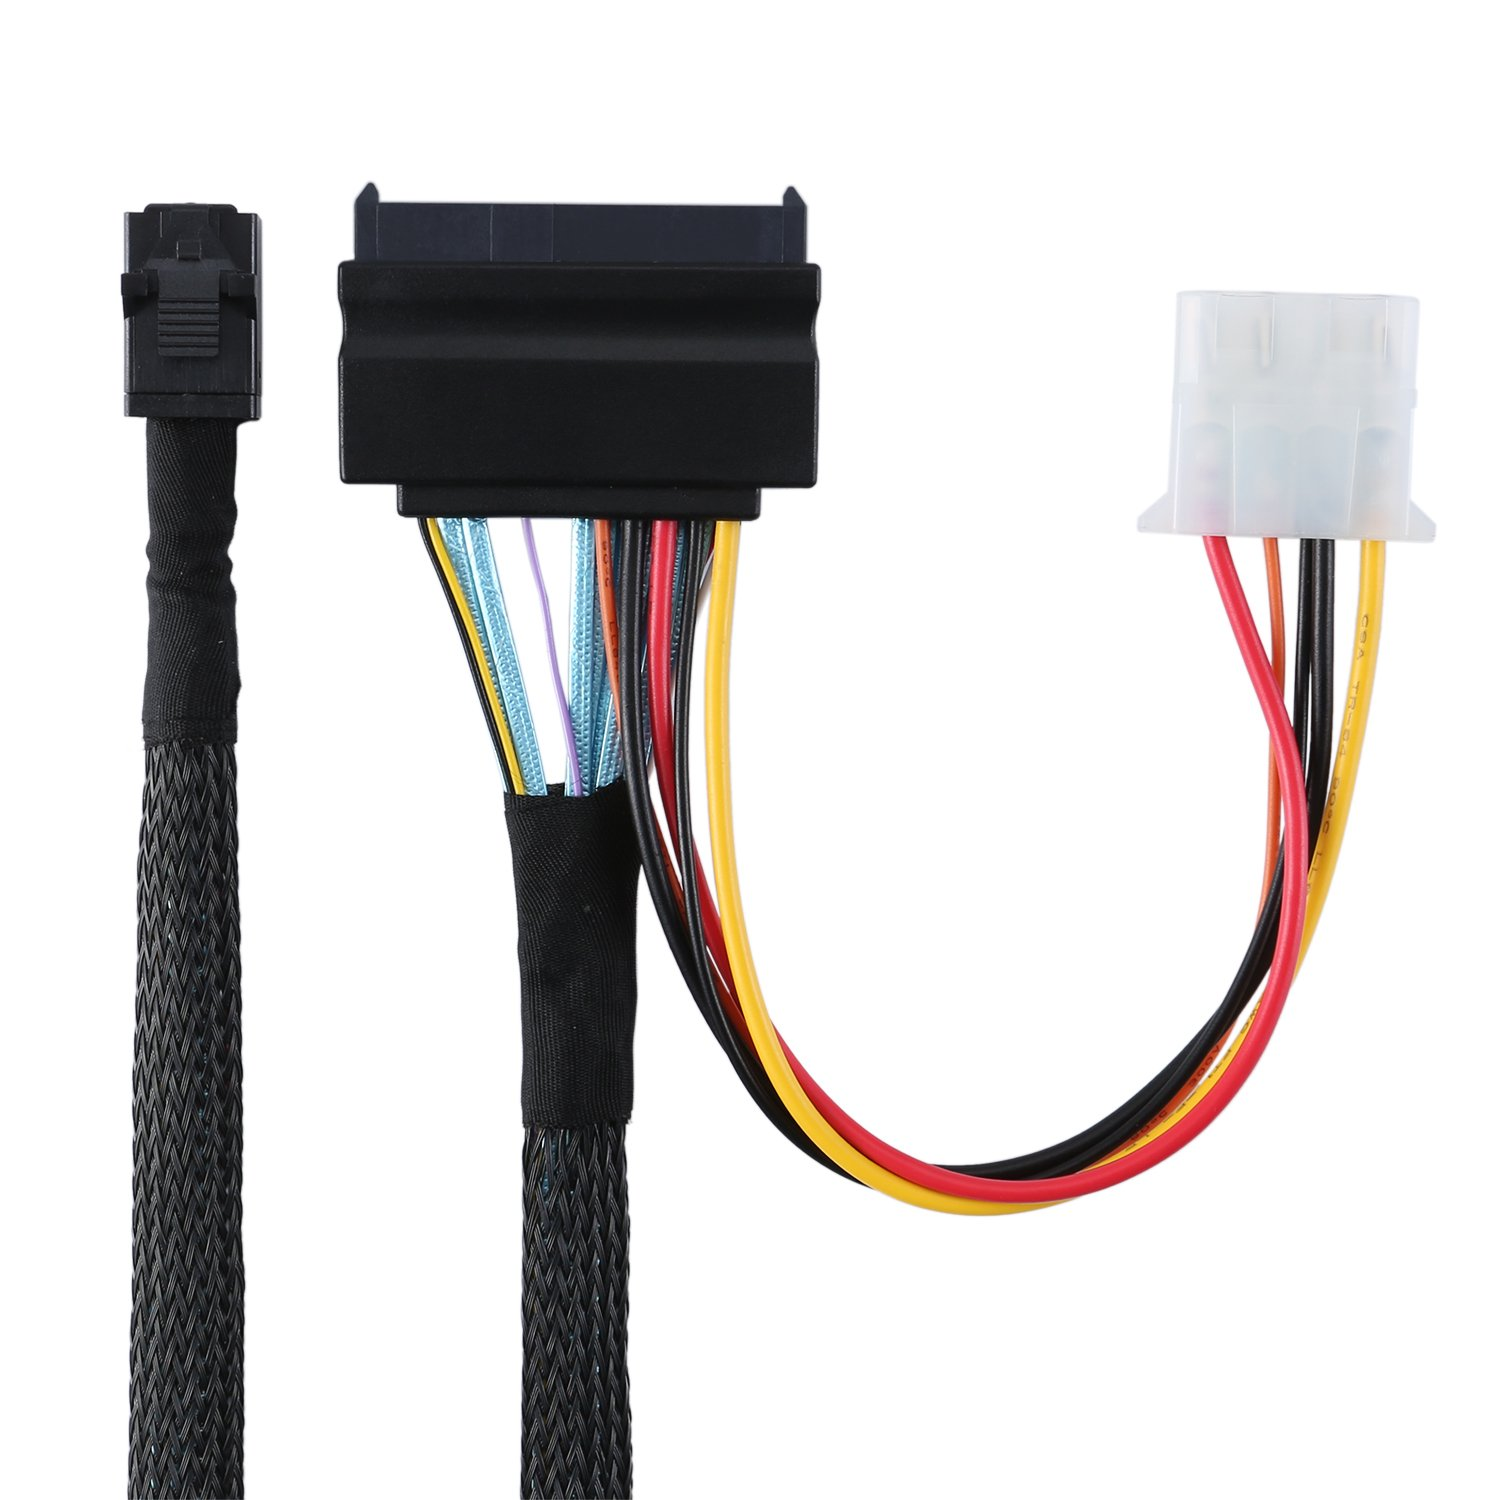 CableCreation 2.5FT Mini SAS HD Cable Internal Mini SAS SFF 8643 to U.2 SFF 8639 Cable with 4 Pin SATA Power Connector for Workstations,Servers and More by CableCreation (Image #3)